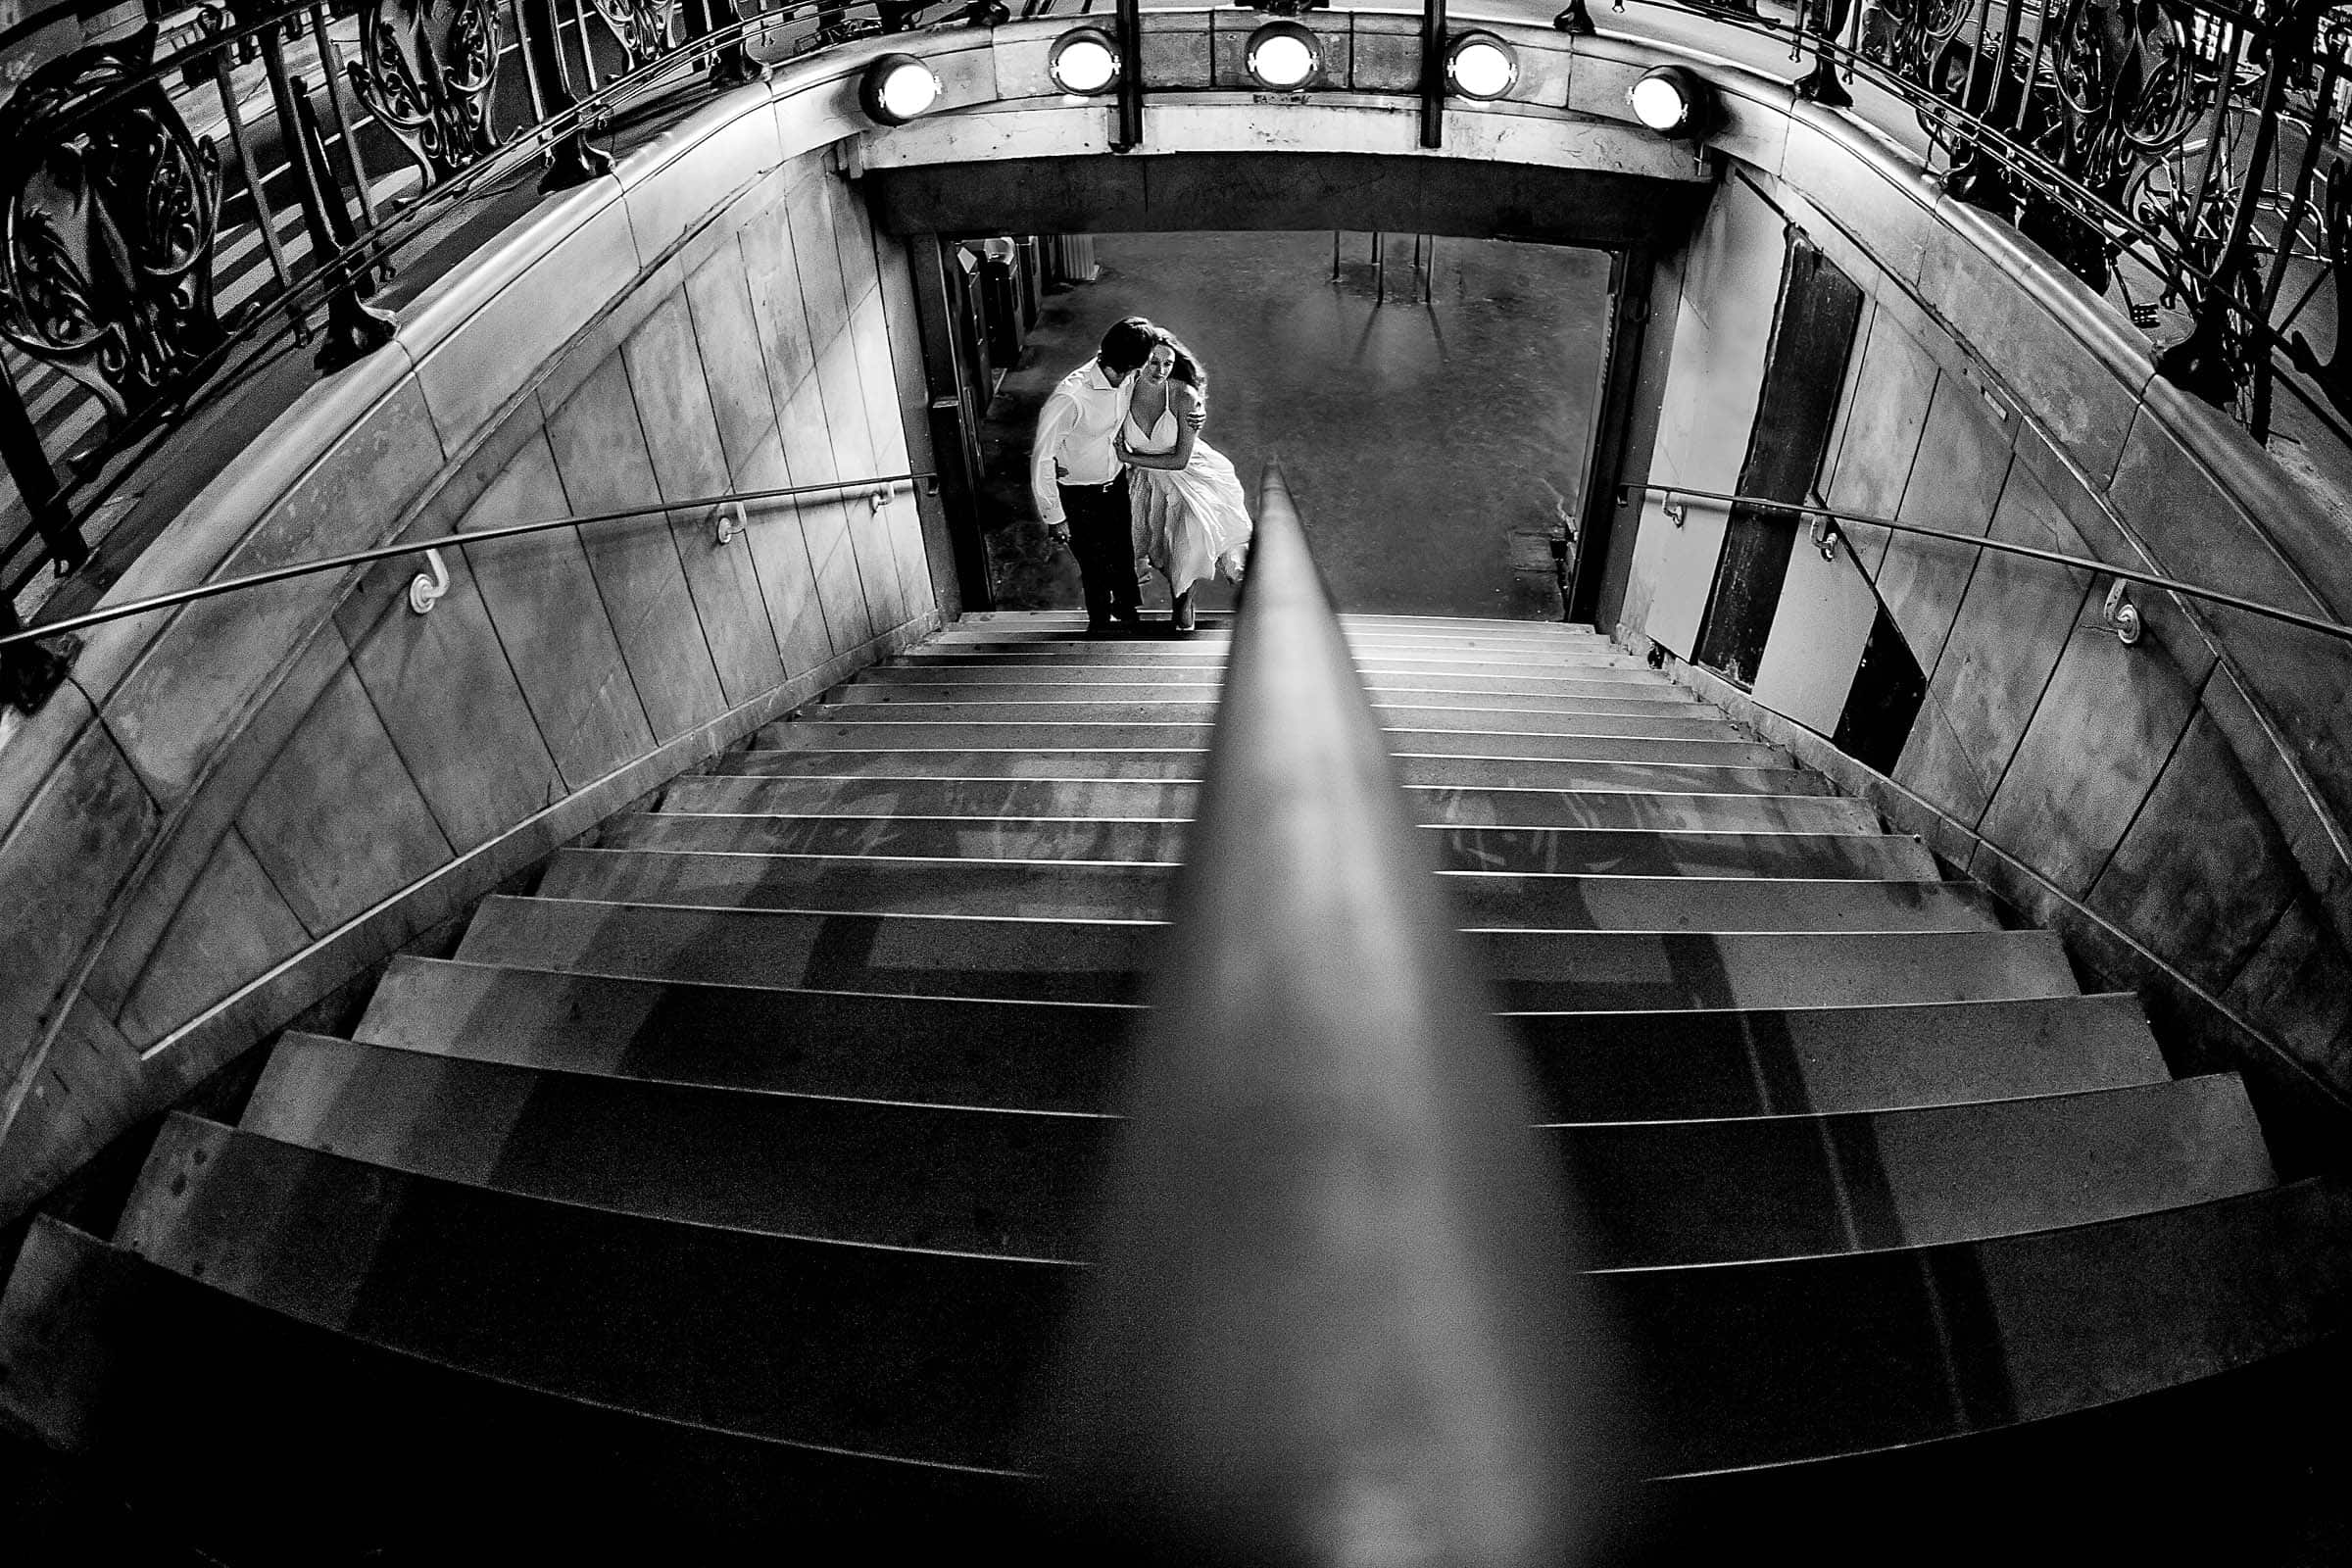 Bride and groom walking up a subway staircase at night during their Paris engagement date